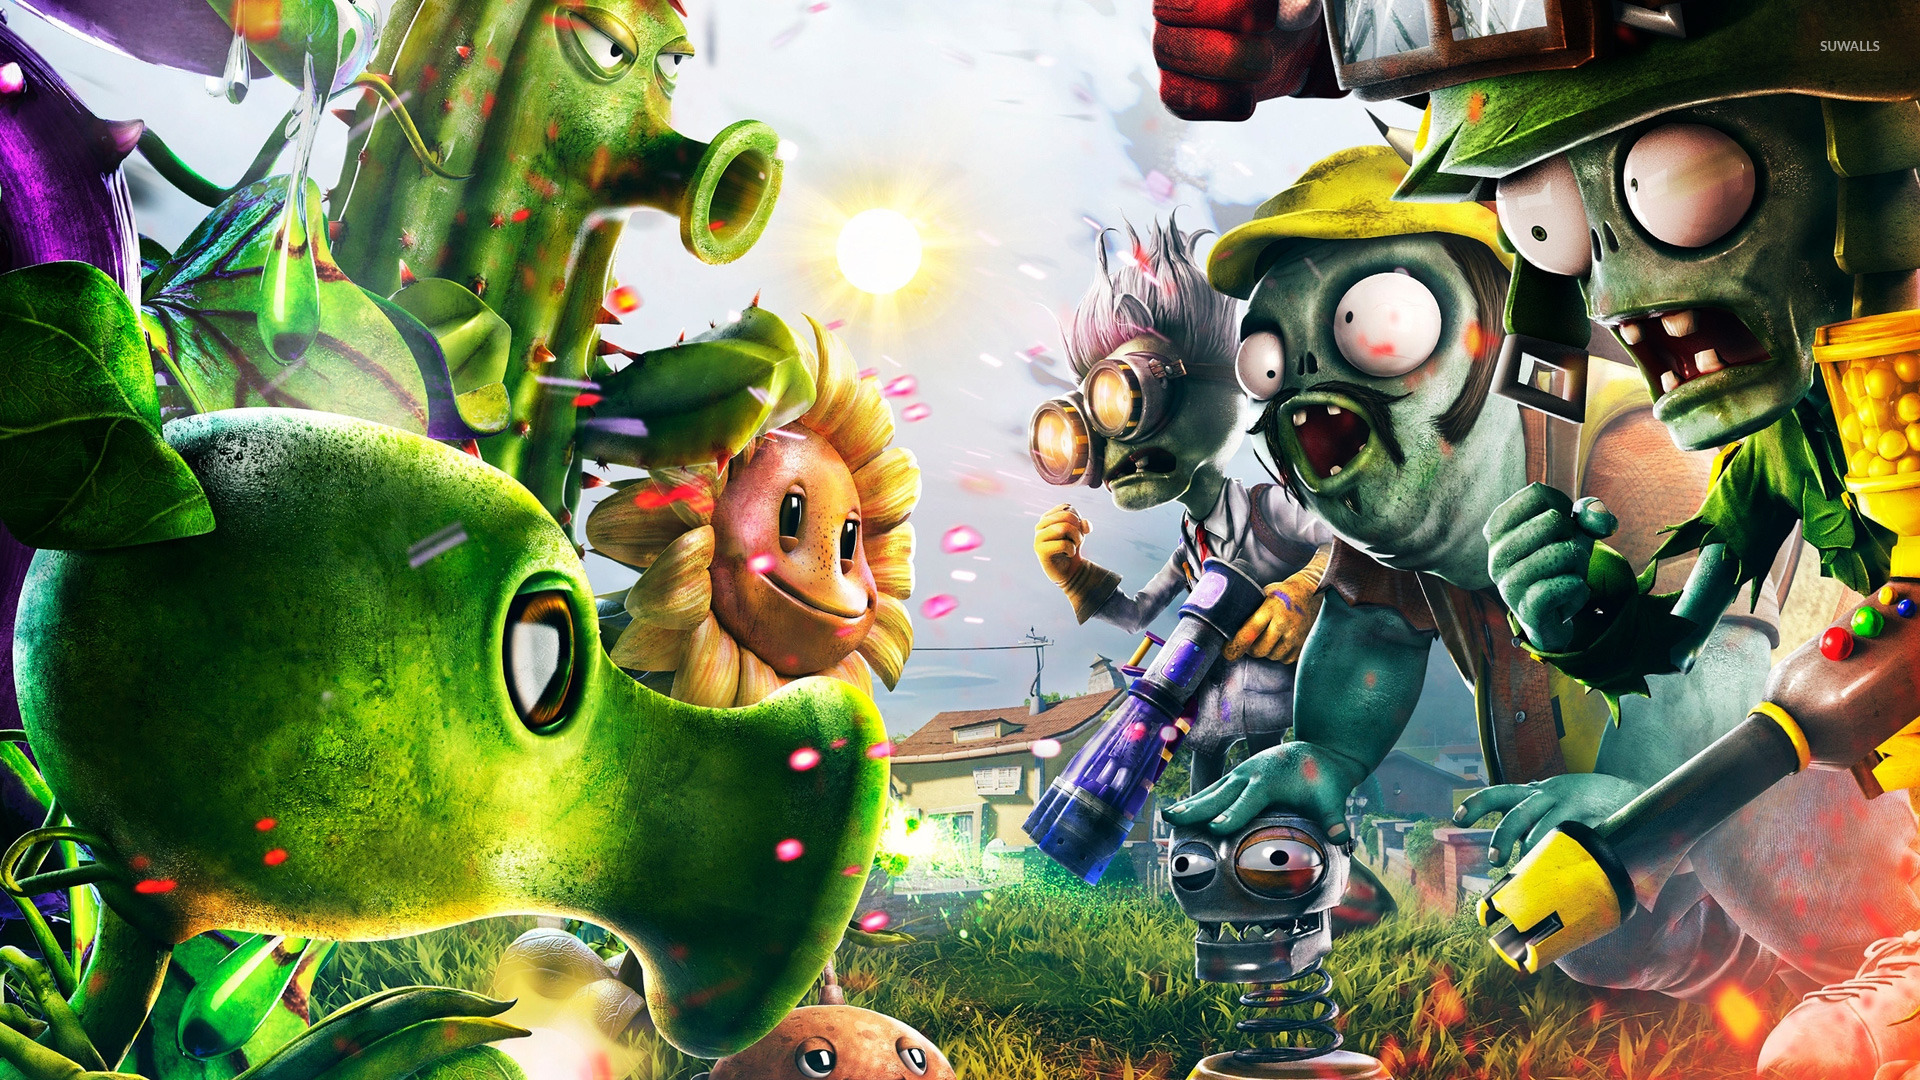 plants vs. zombies: garden warfare wallpaper - game wallpapers - #25699